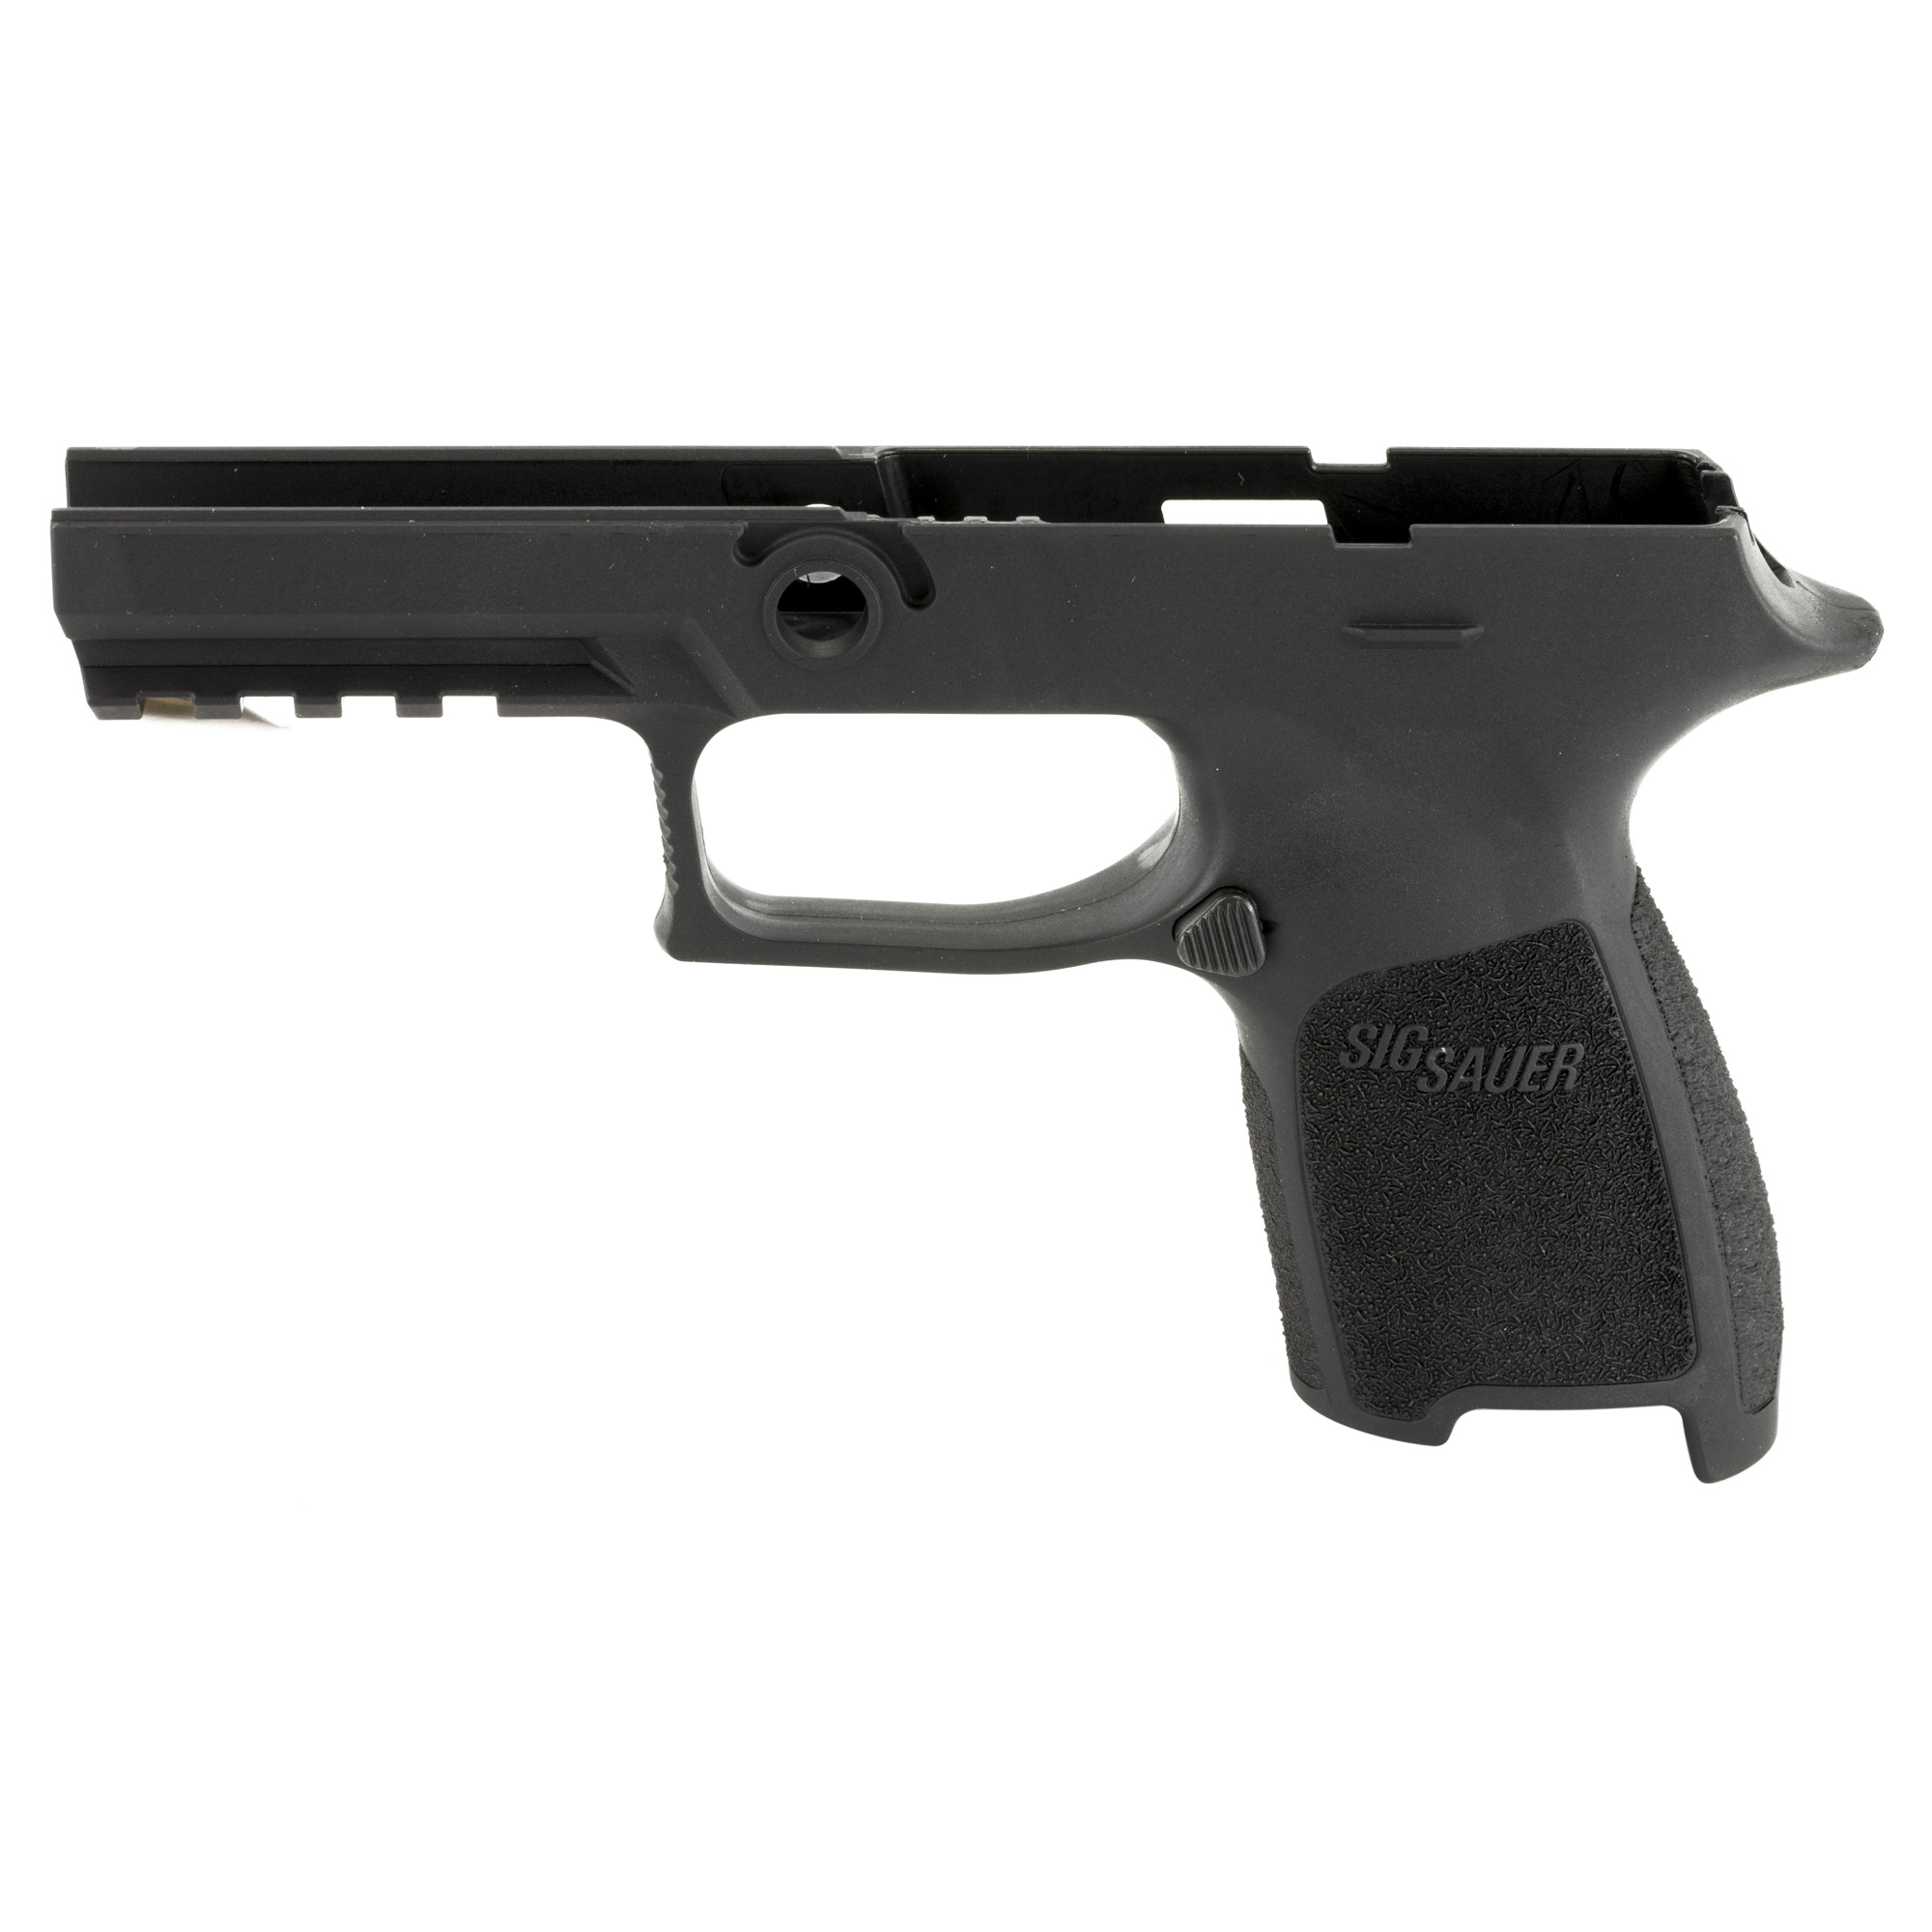 Install your P320/P250 firing control unit into this Grip Module Assembly to convert to a P320 or P250 compact chambered in .45ACP with a grip size of your choice. Requires the .45ACP slide and barrel.